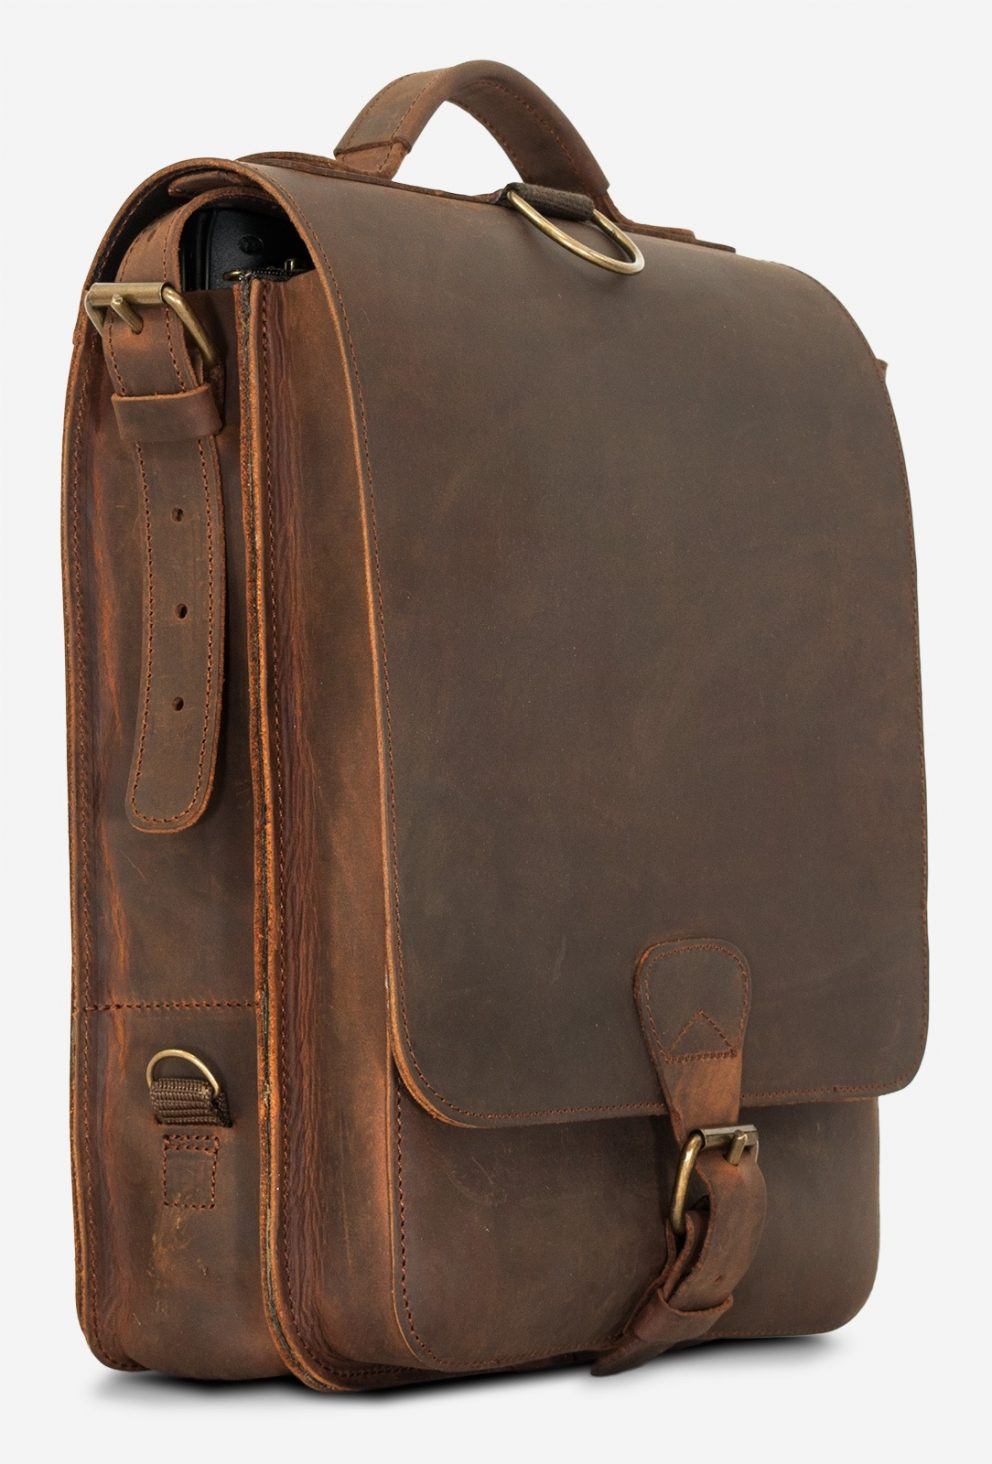 Side view of the vegetable-tanned brown leather backpack with shoulder belt.